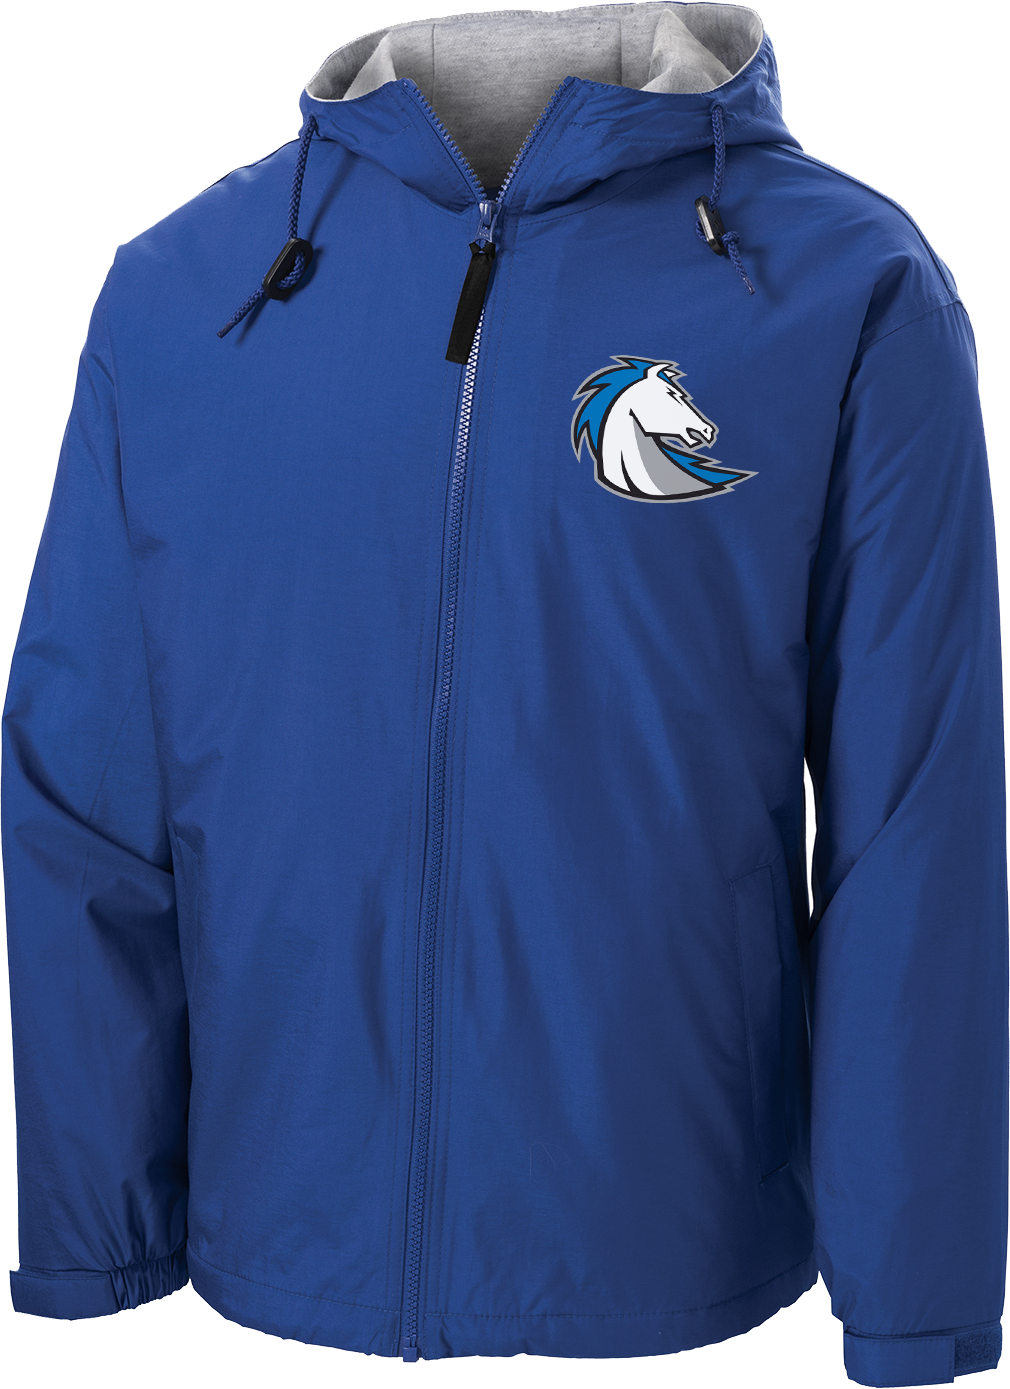 Clear Springs Lacrosse Hooded Jacket